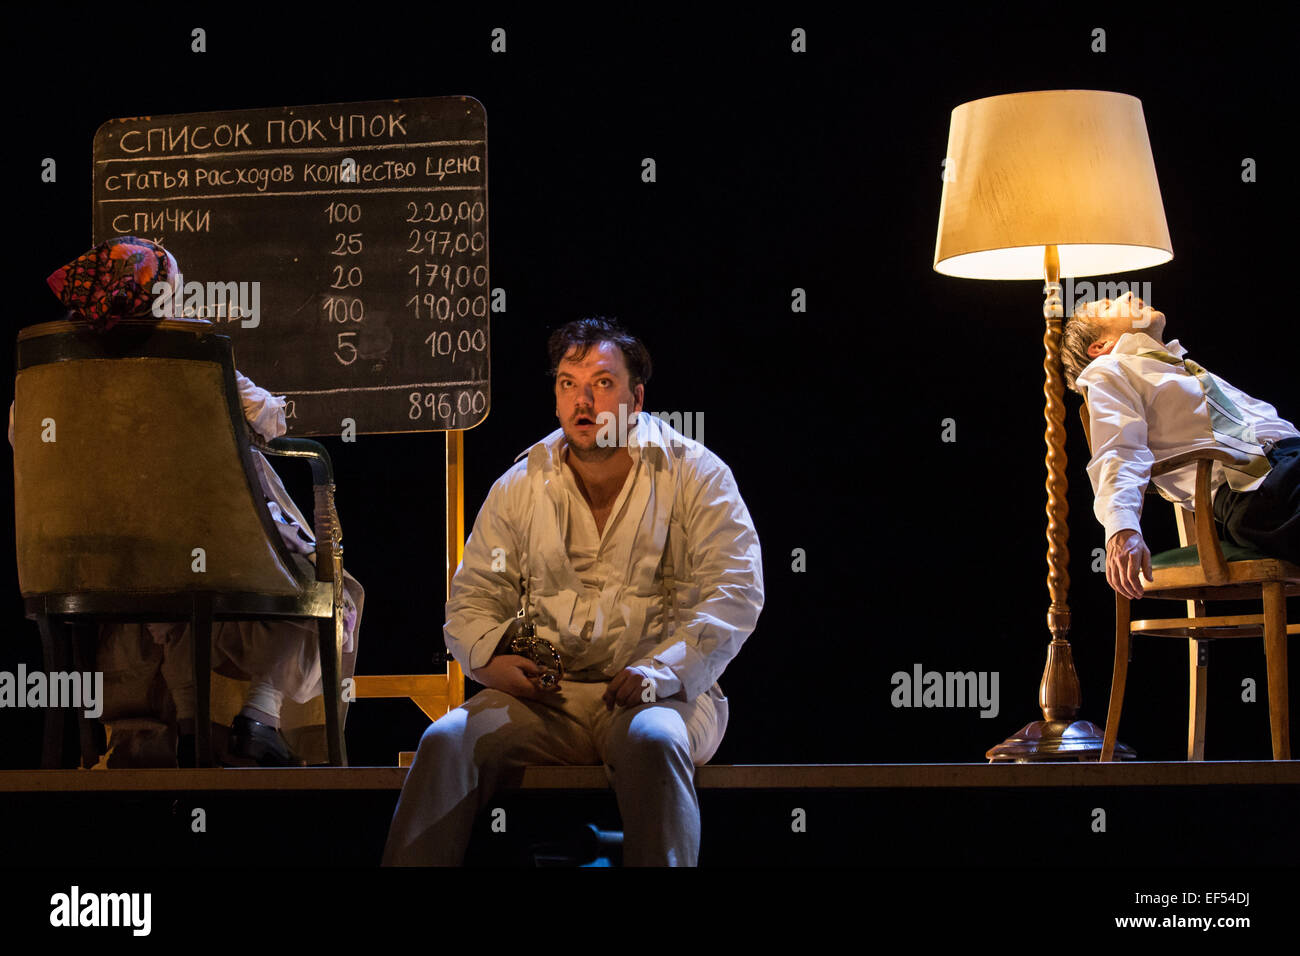 Anton Chekhov's play 'Uncle Vanya' was successfully staged at the renowned Deutsches Schauspielhaus, - Stock Image